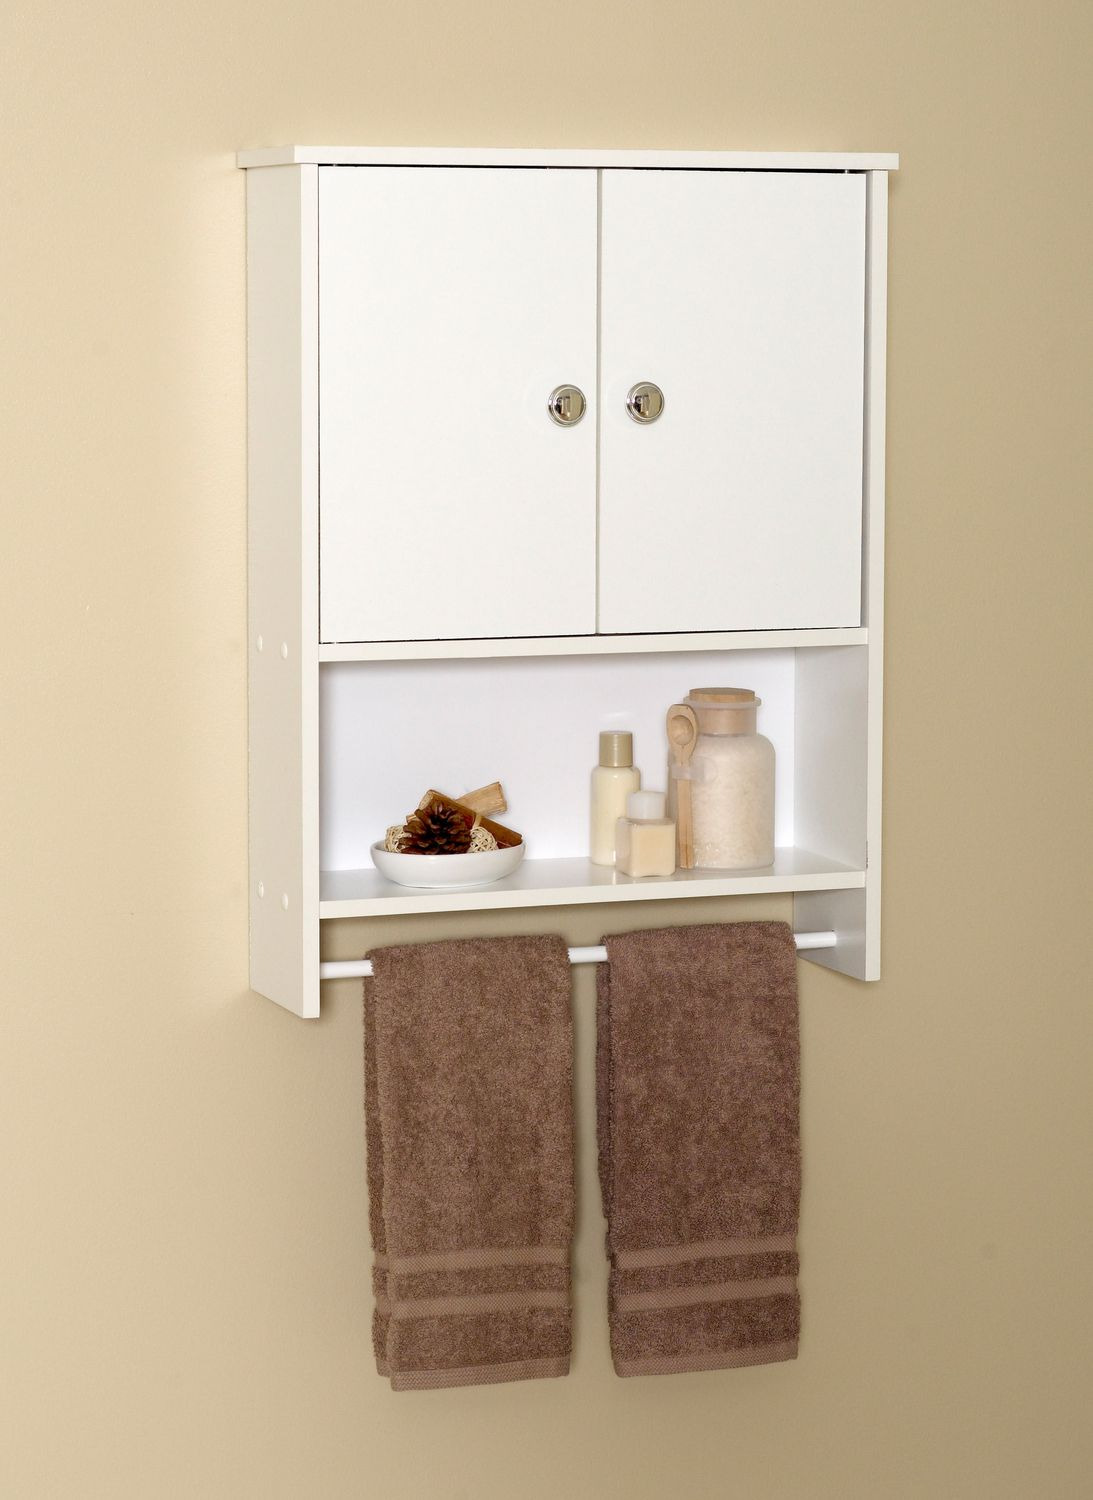 Walmart Storage Cabinets with Doors Lovely Mainstays White Wood 2 Door Wall Cabinet